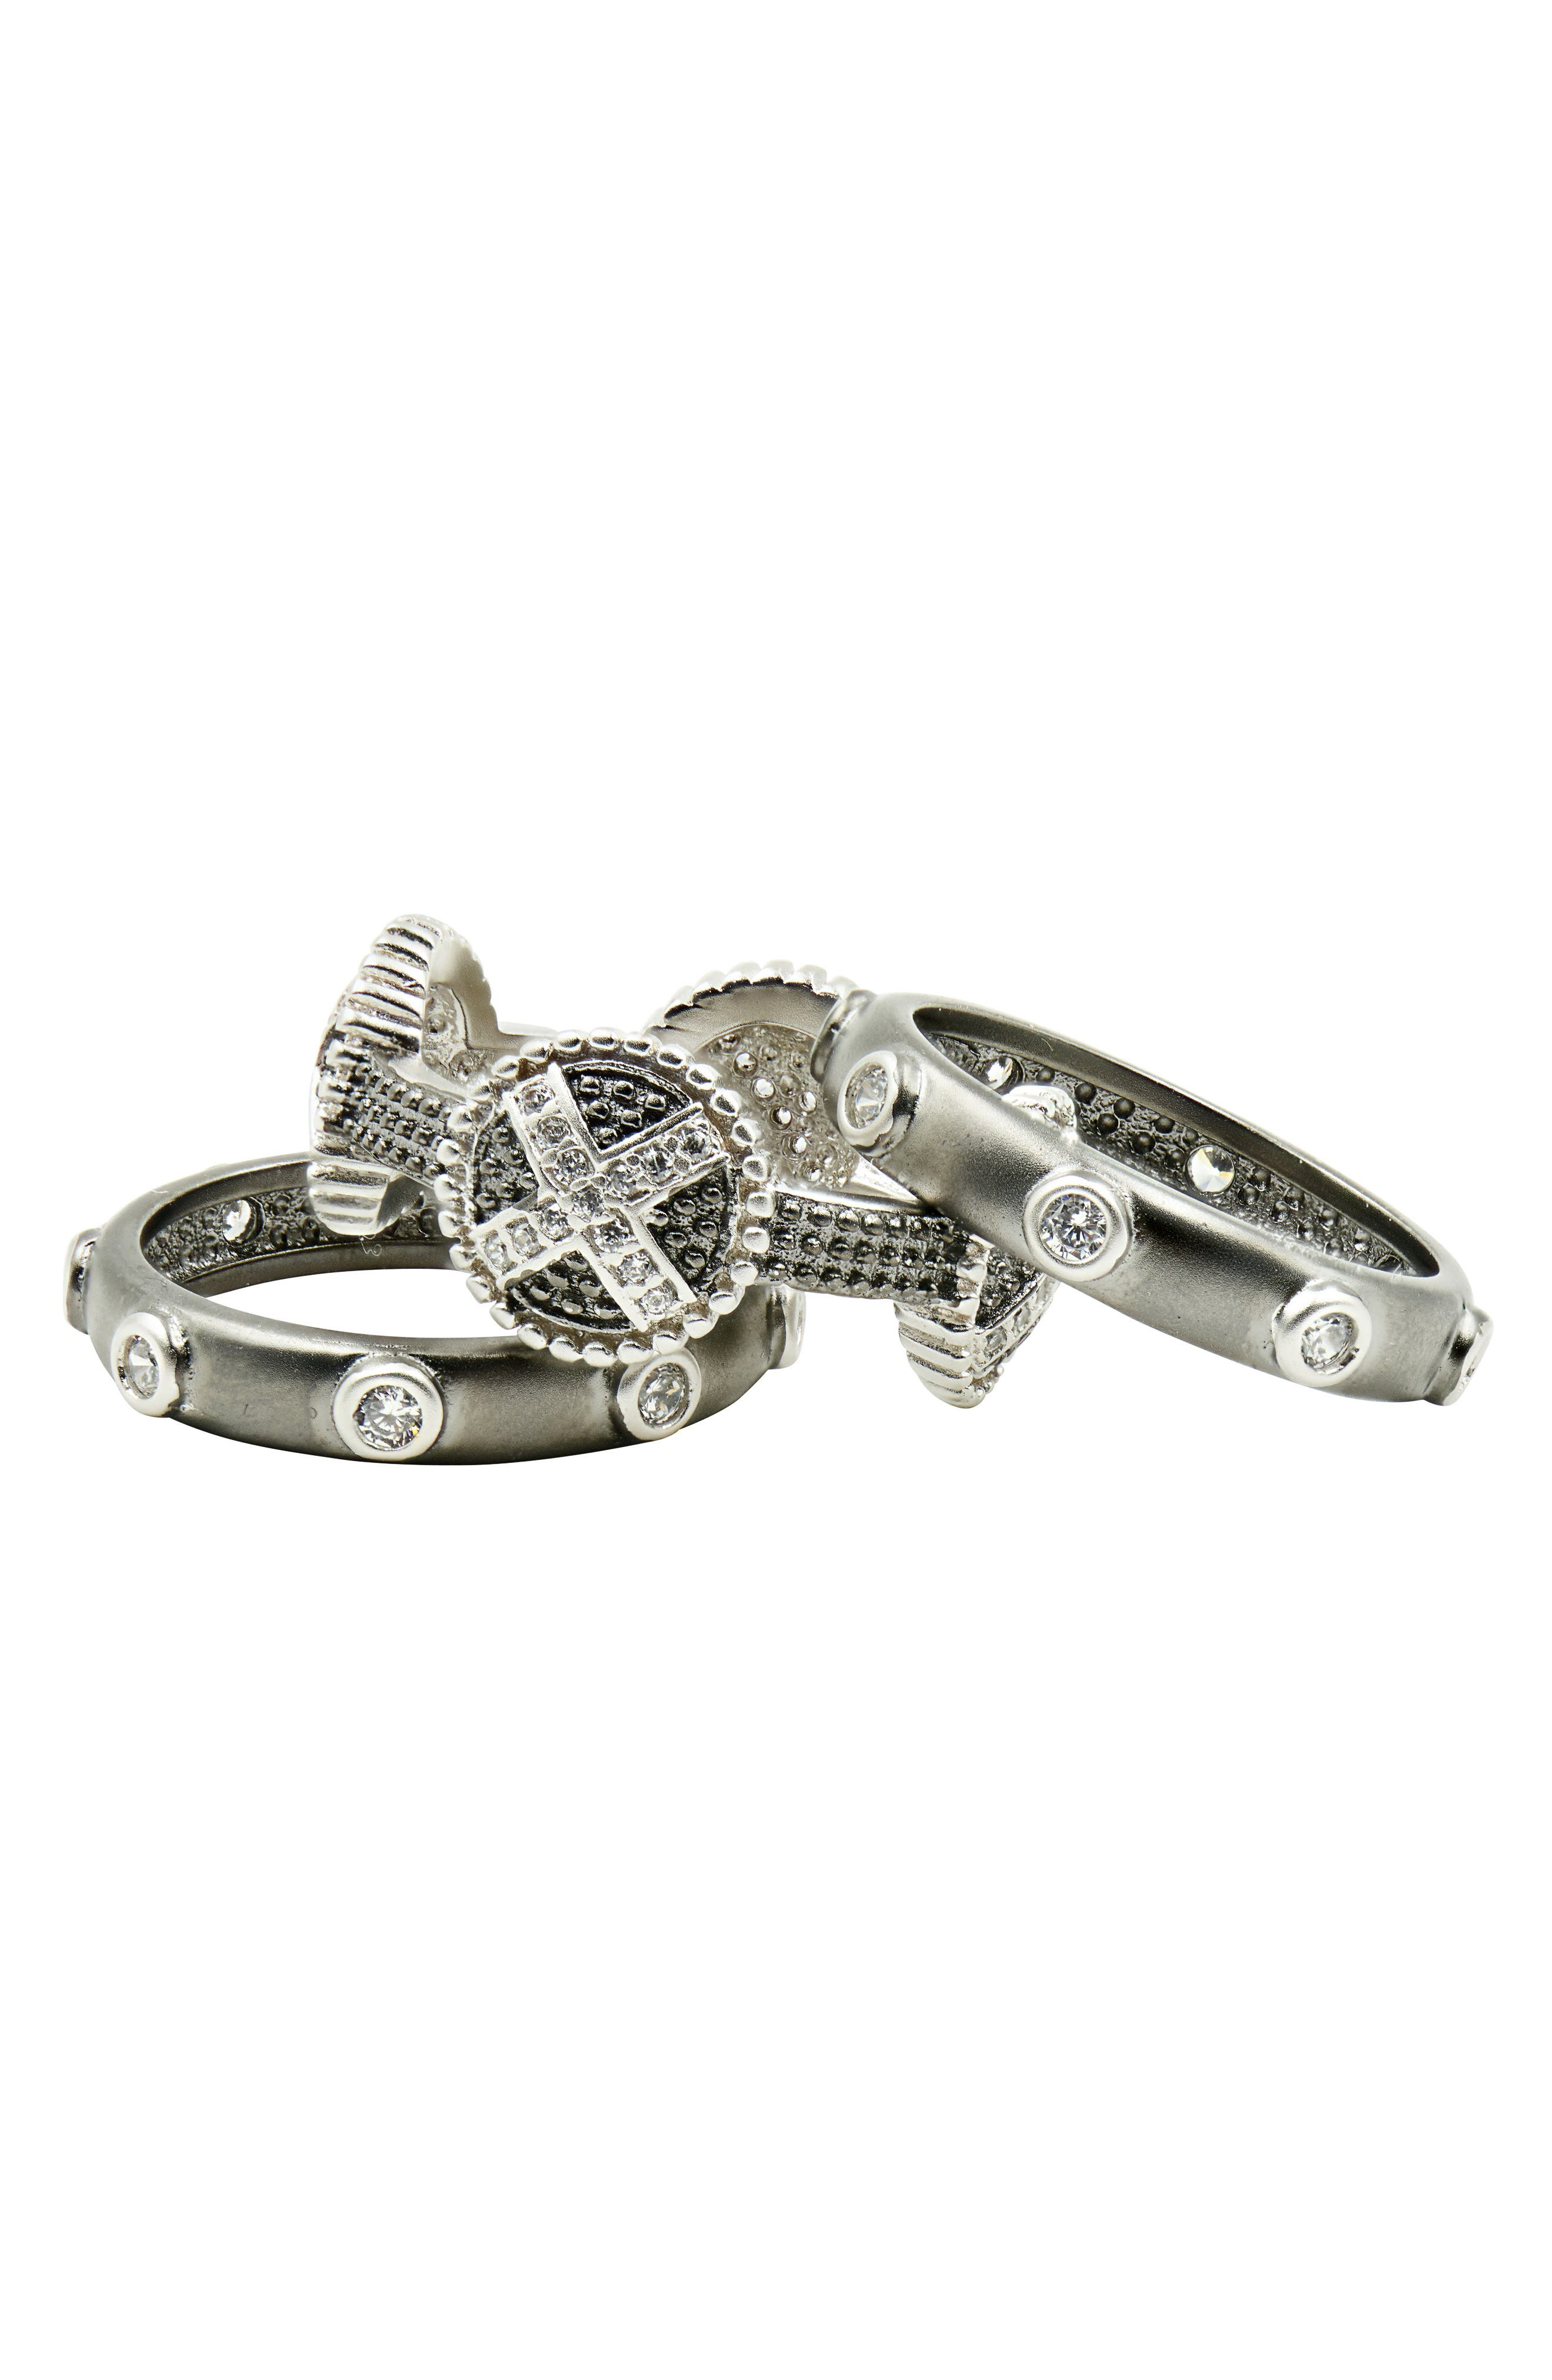 Industrial Finish Stackable Rings,                             Main thumbnail 1, color,                             Silver/ Black Rhodium